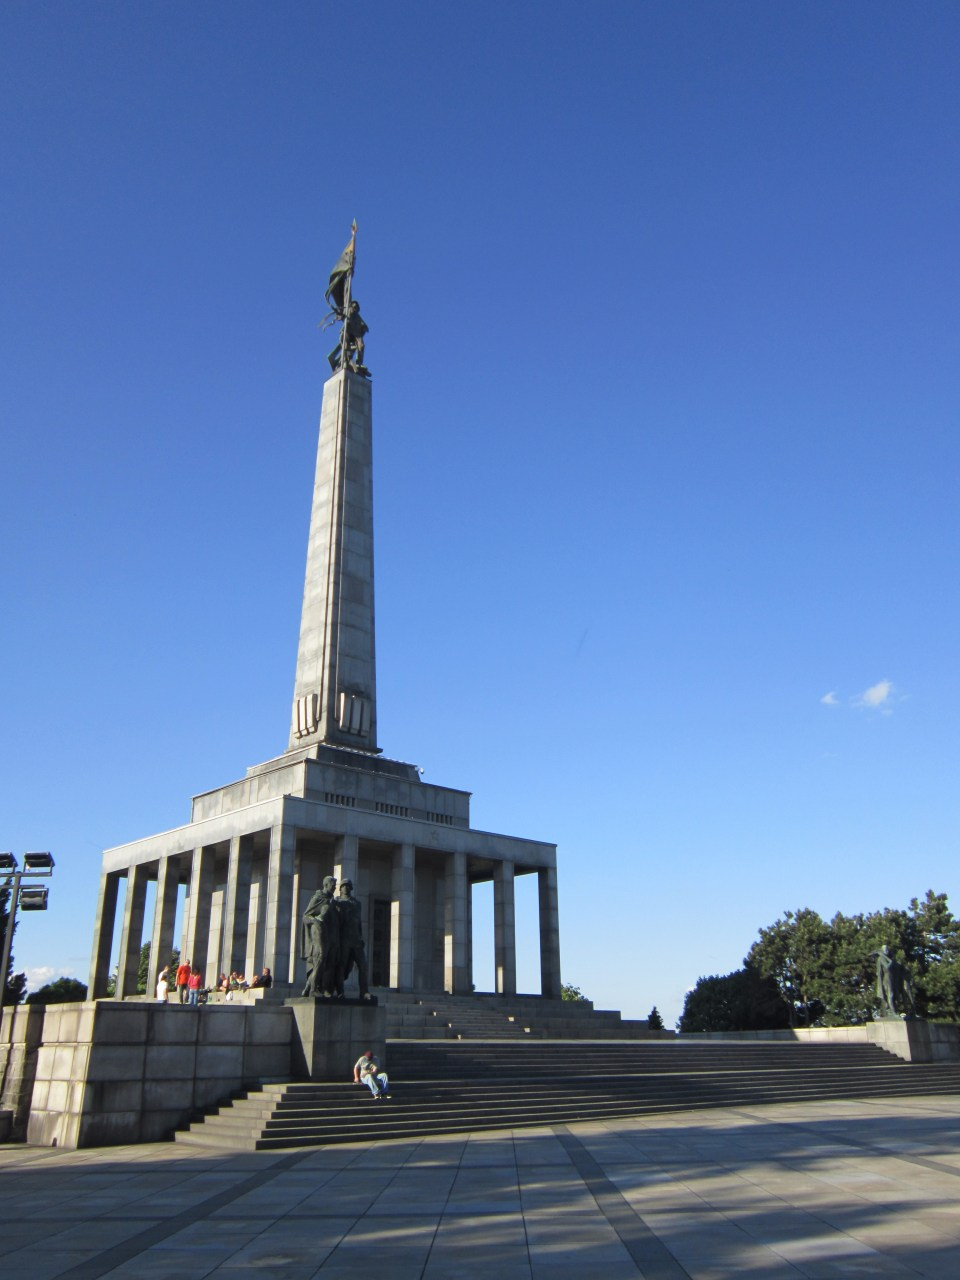 Bratislava view of the main pillar at the Slavín war memorial